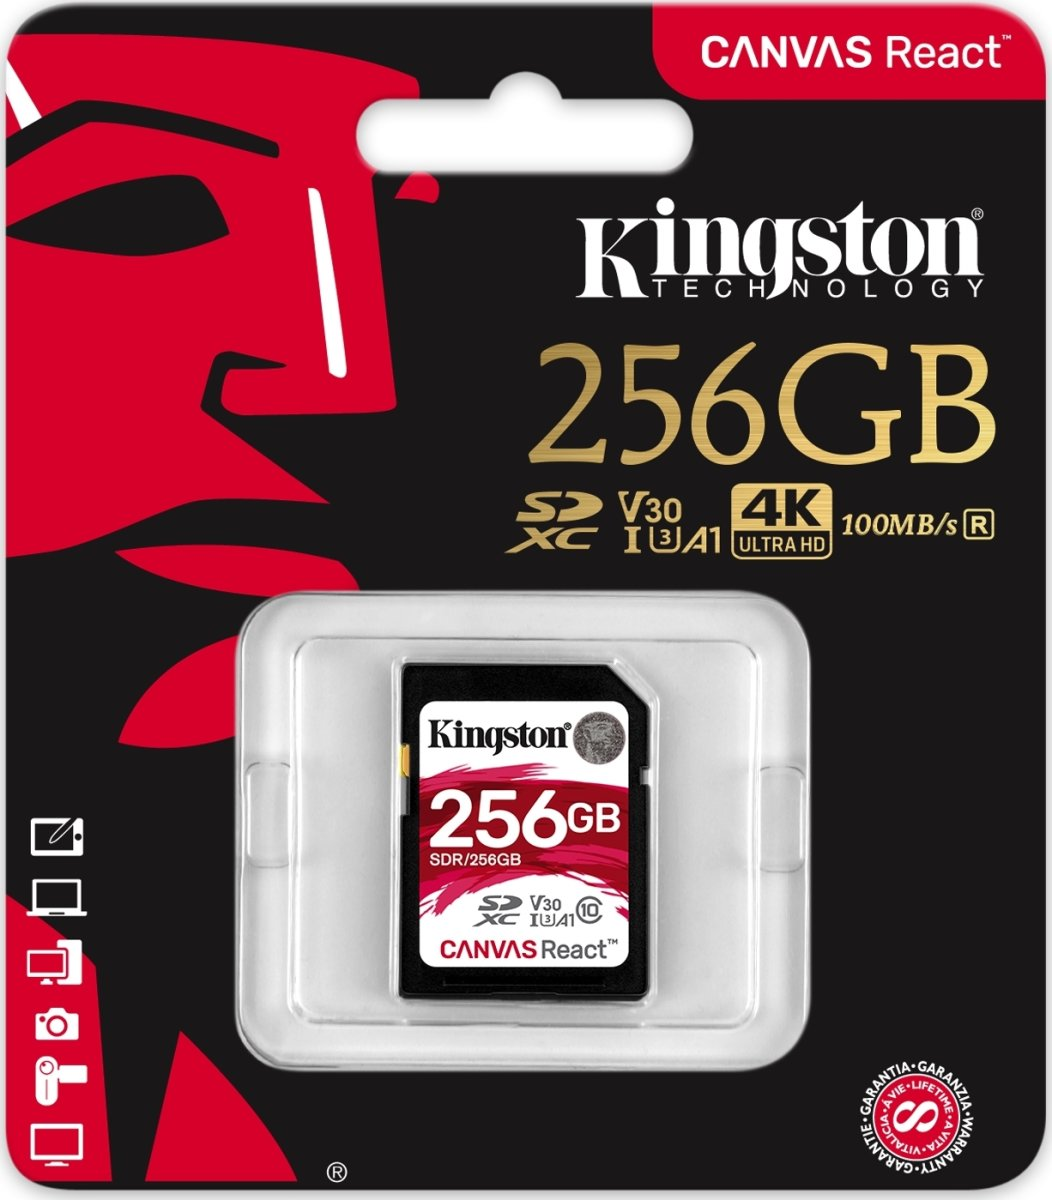 Kingston Canvas React 256GB SDXC hukom.kort